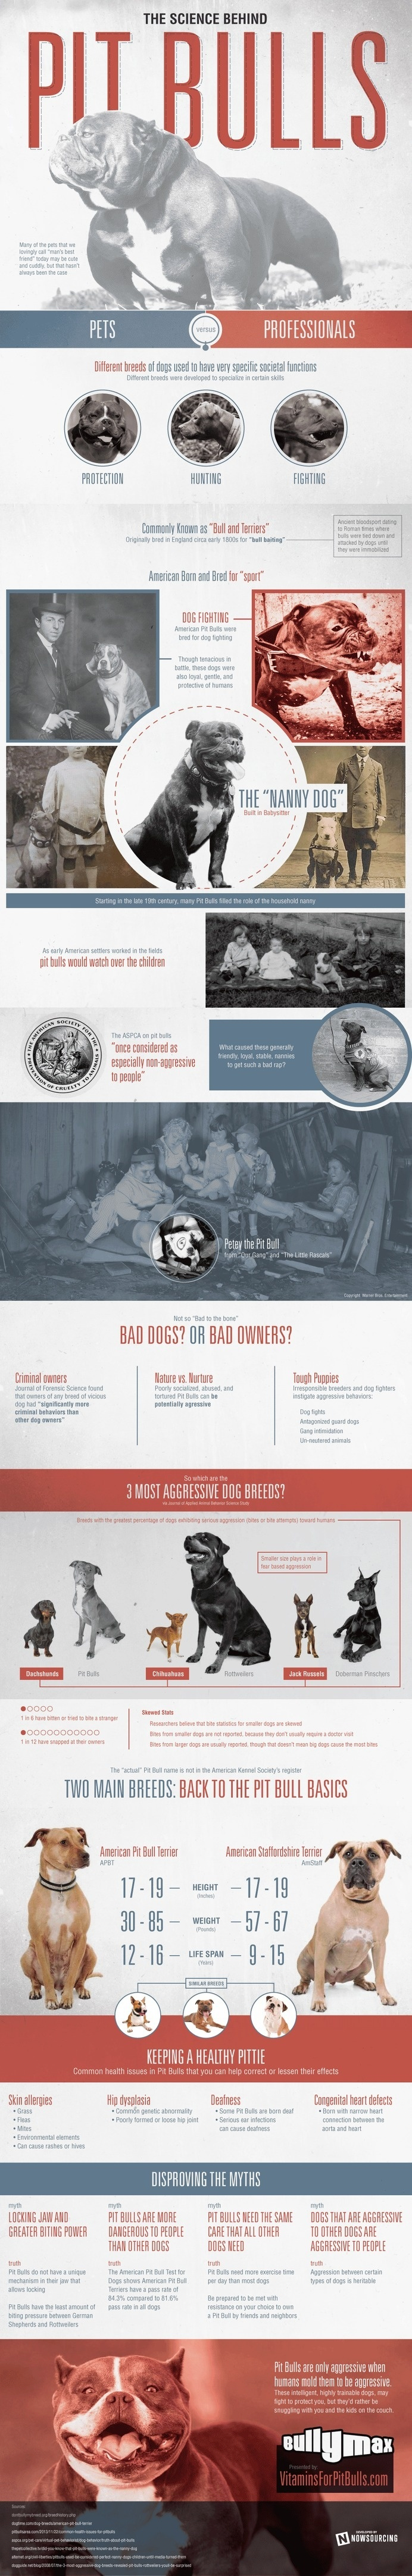 Pit bulls have a bad reputation, but it has not been earned by the dogs alone.Learn more about the science of pit bulls from this infograp # #aggressive #breed #bully #pit #dangerous